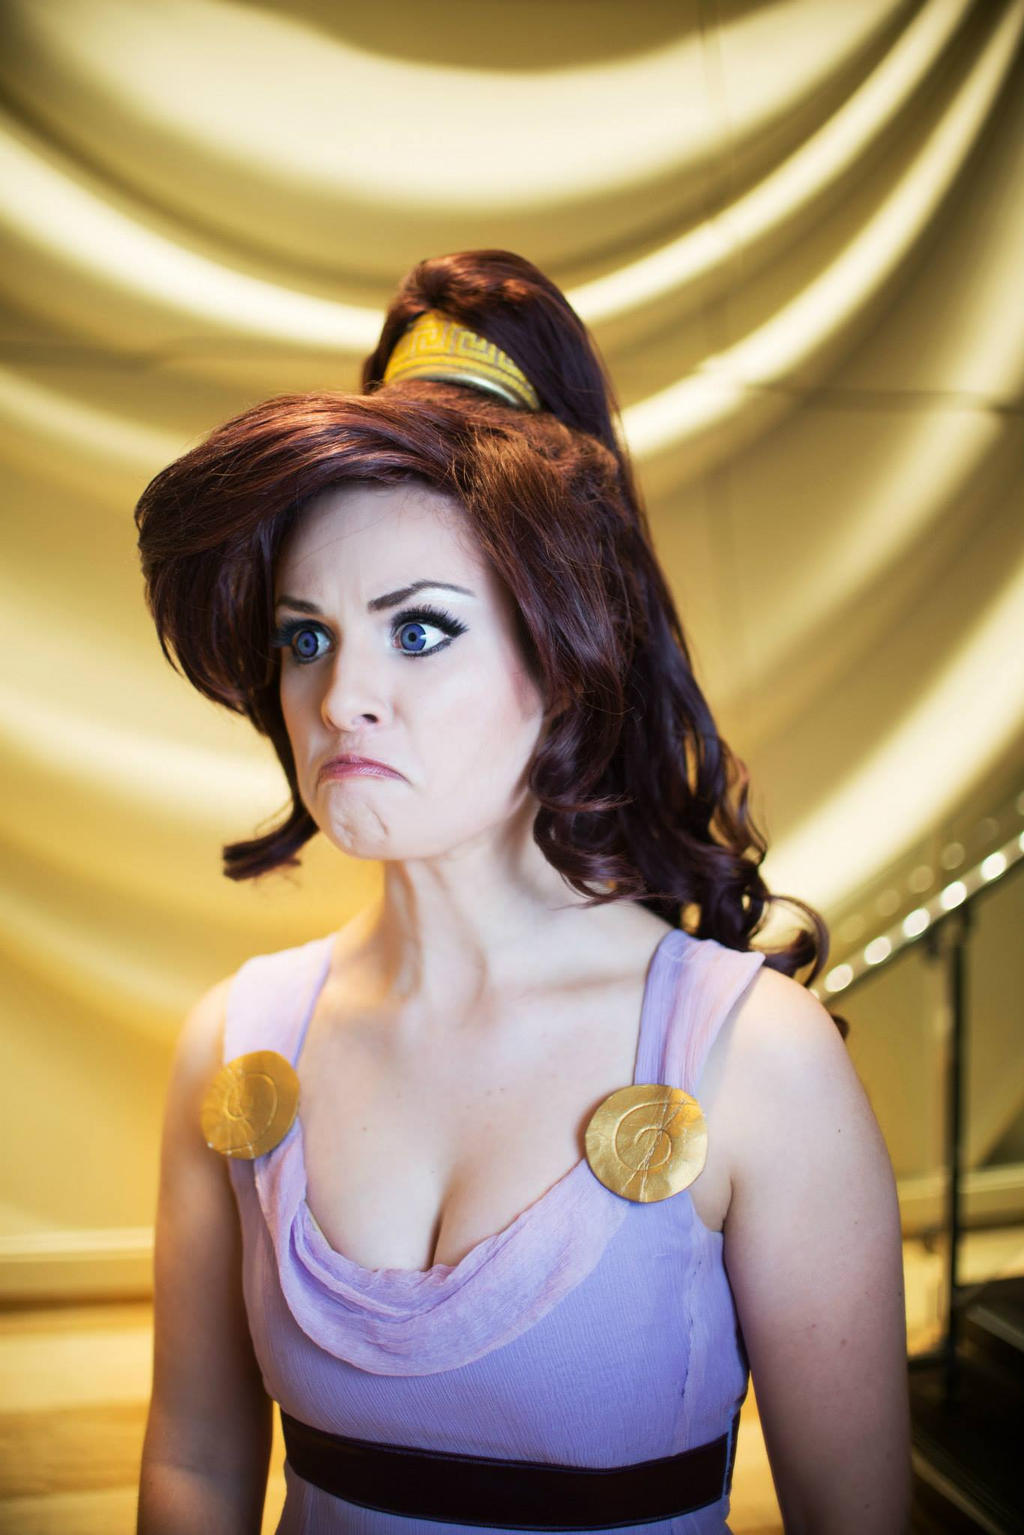 Grumpy Meg. The grumpiest Disney heroine of all by KoriStarfire